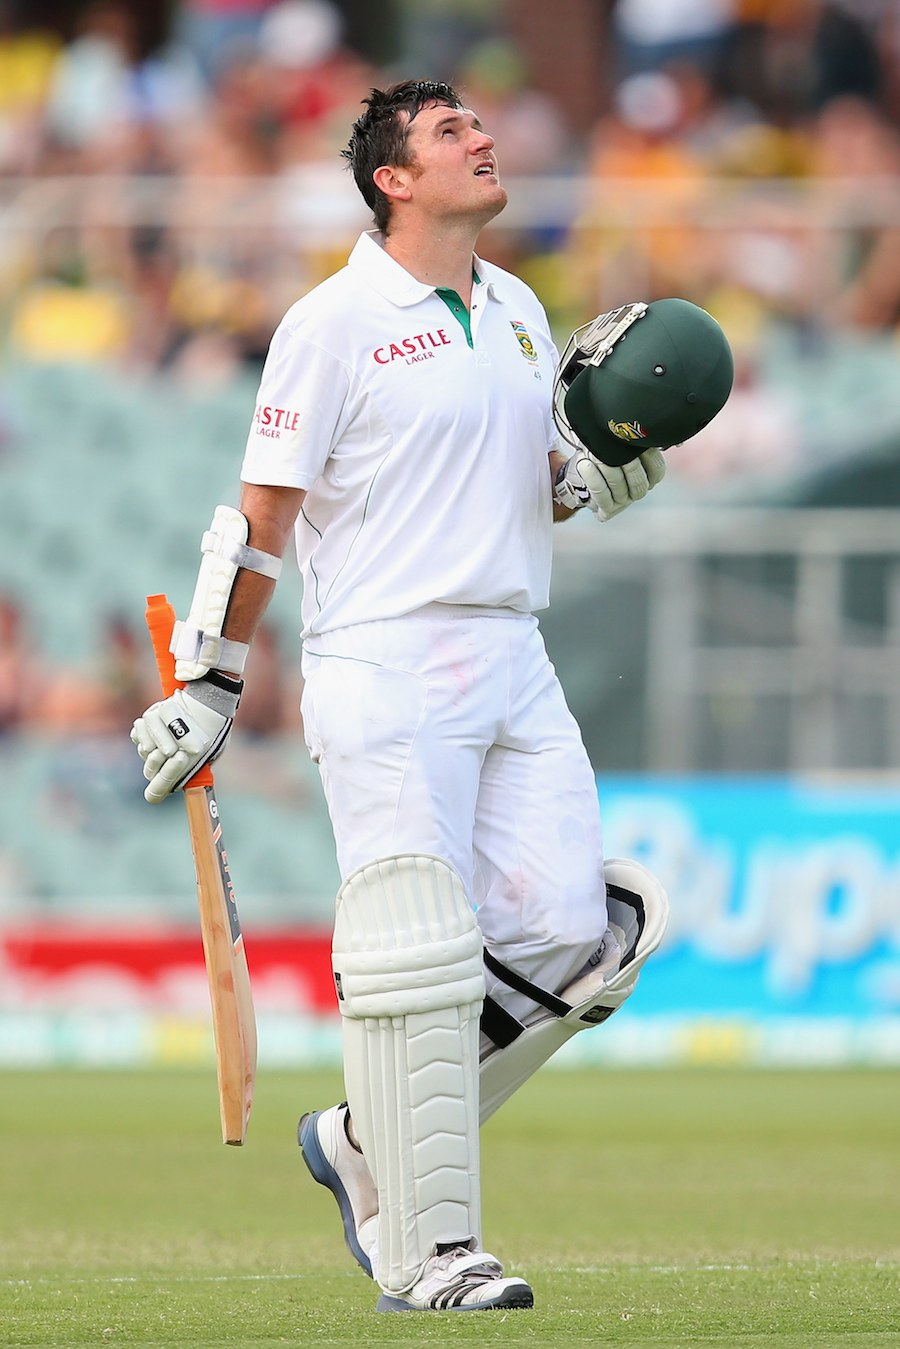 Graeme Smith brought up his 26th Test century